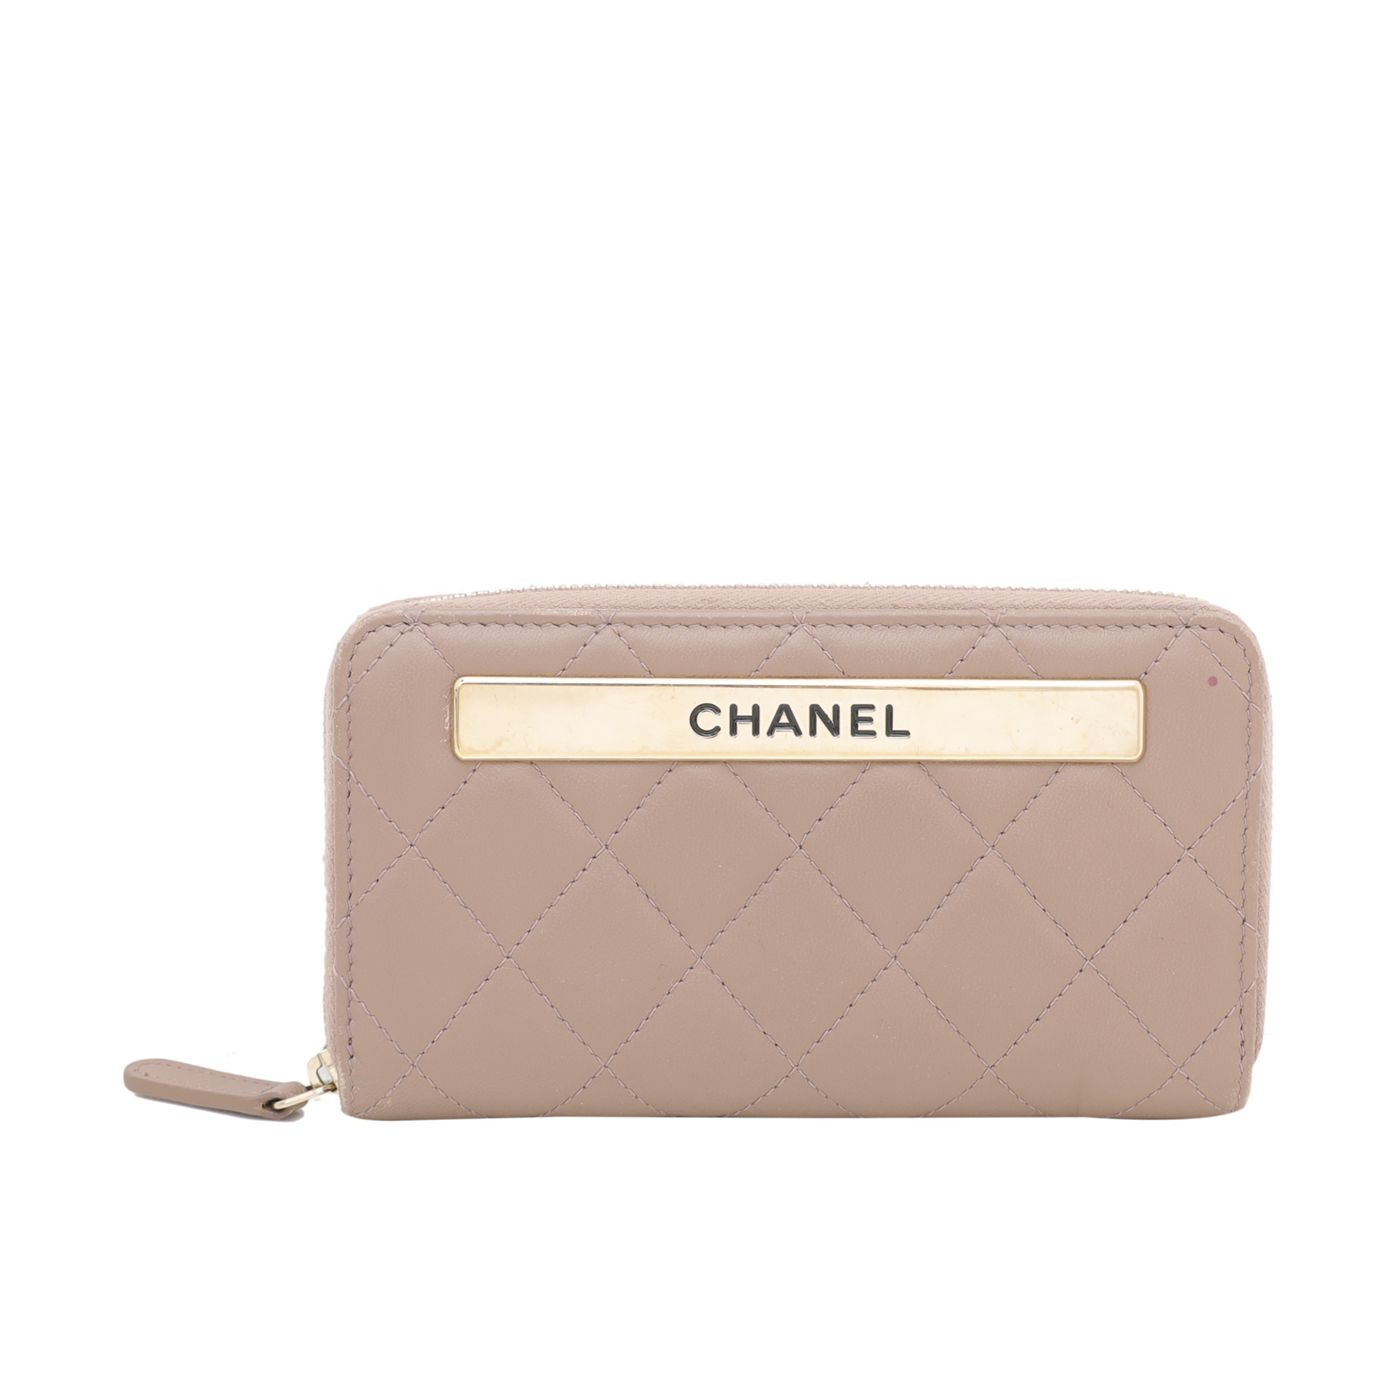 Chanel Light Brown Trendy Zip Around Wallet